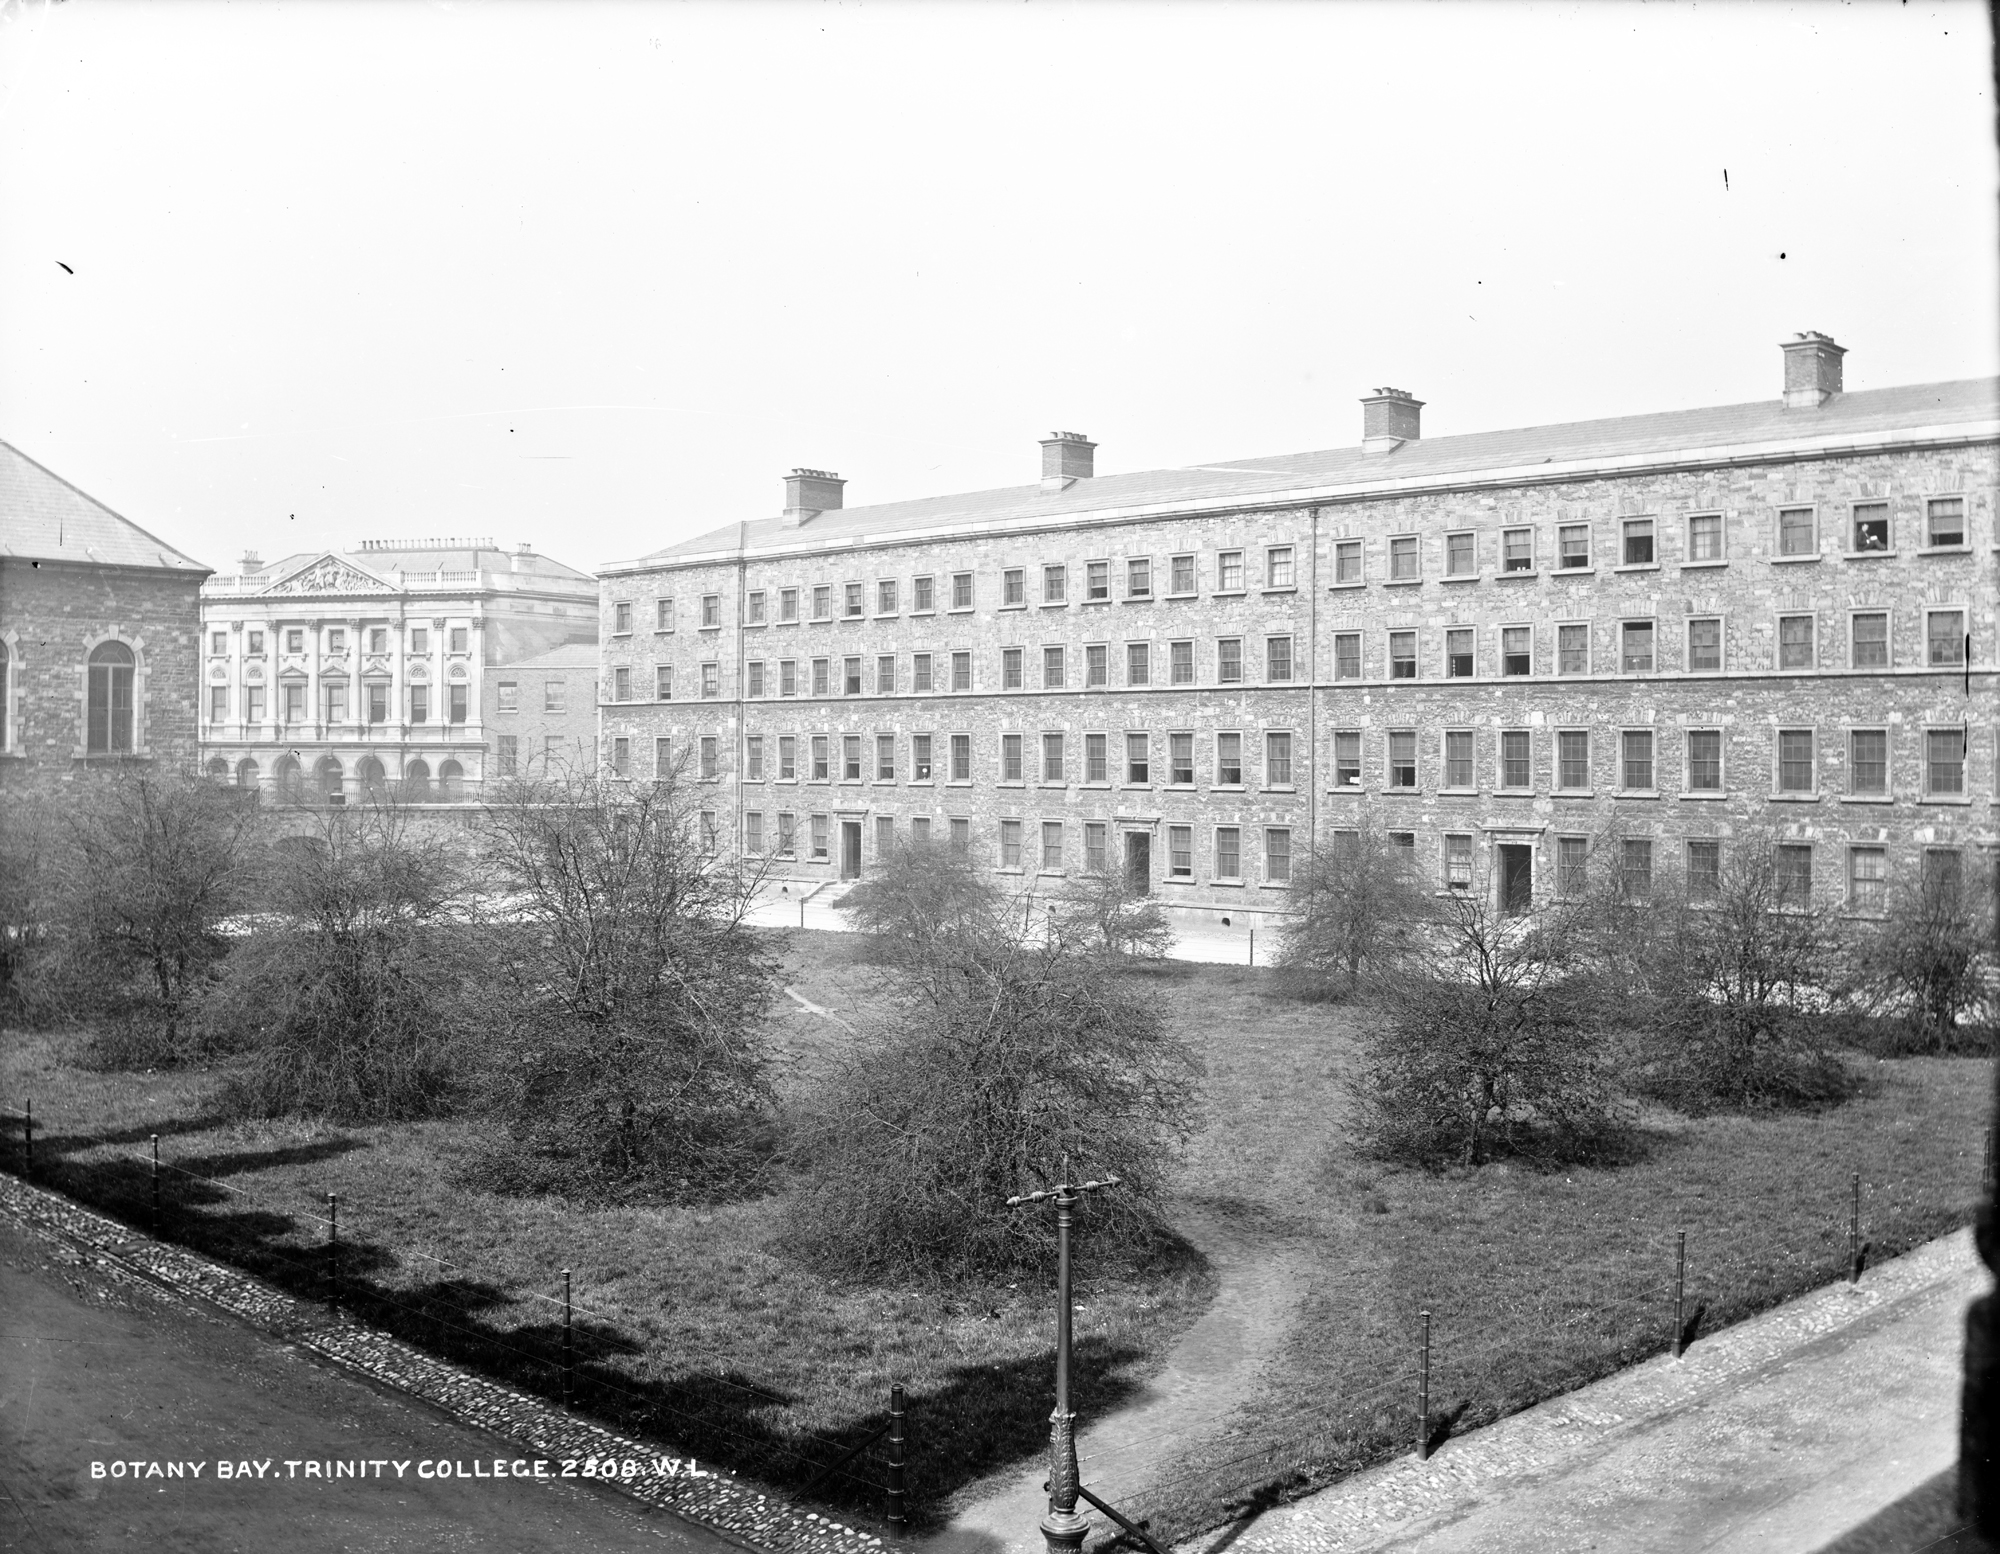 Trinity College, Botany Bay, Dublin City